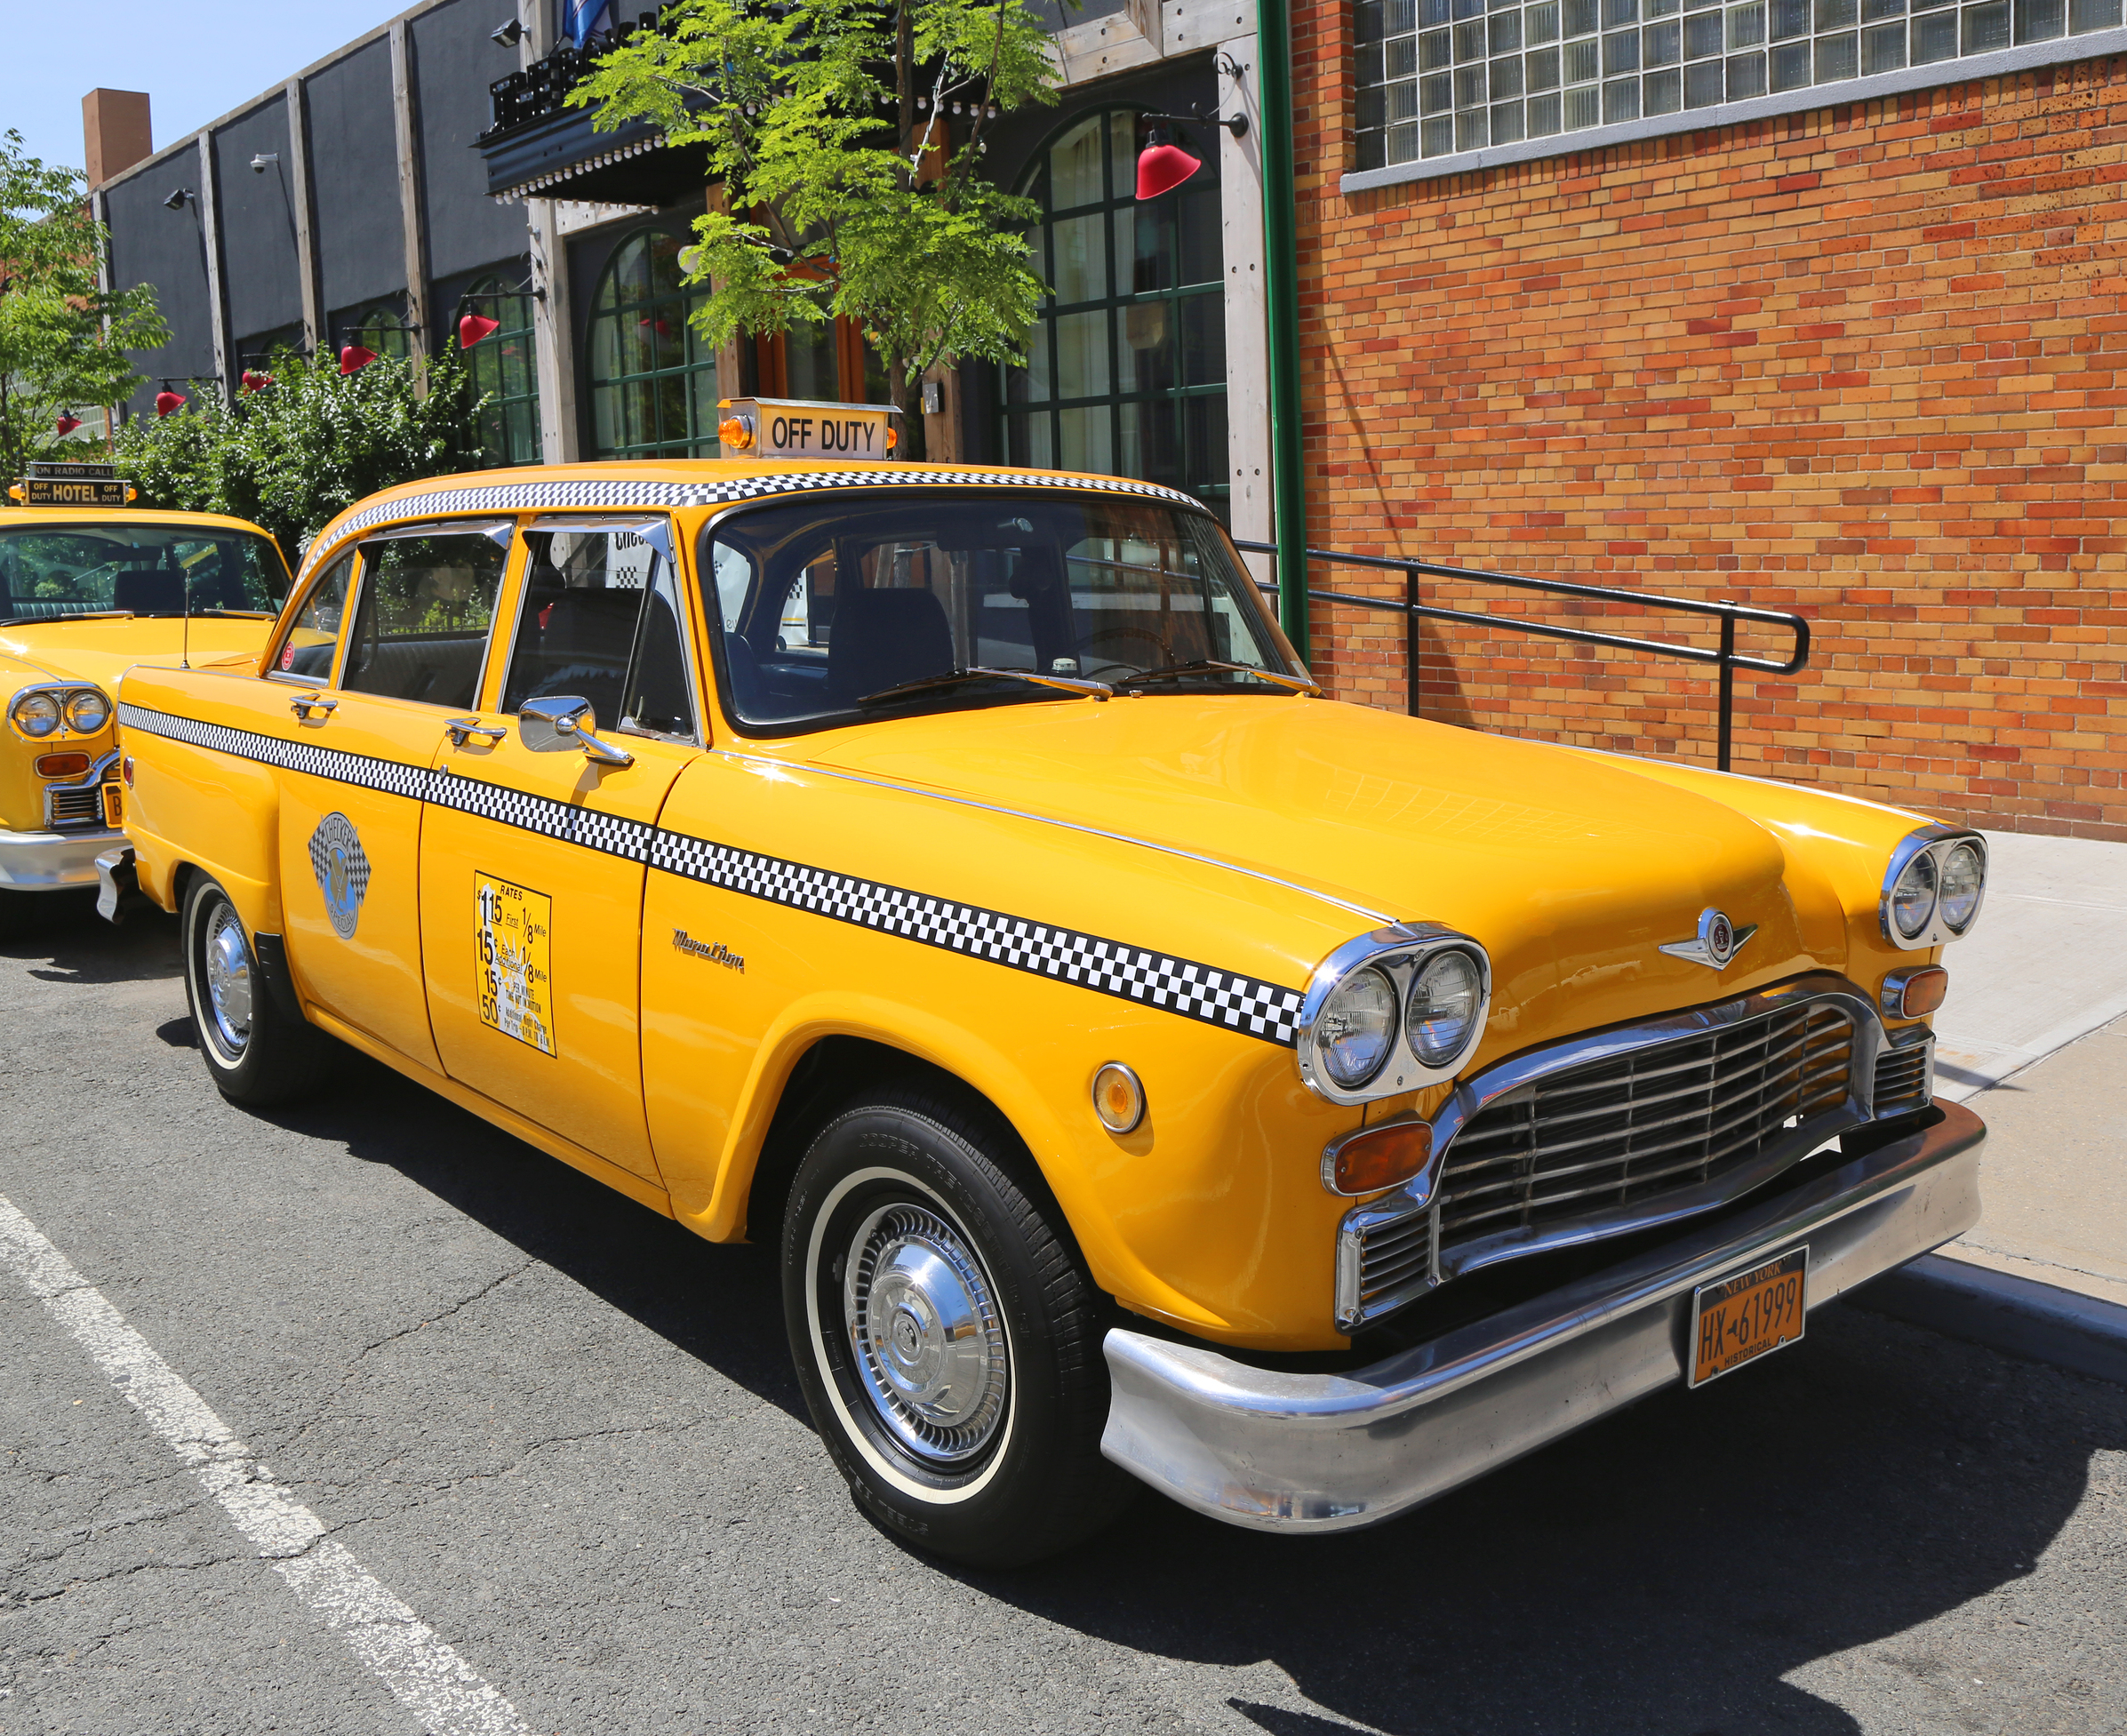 Le Cab Taxi Dustbin Of History The Checker Cab